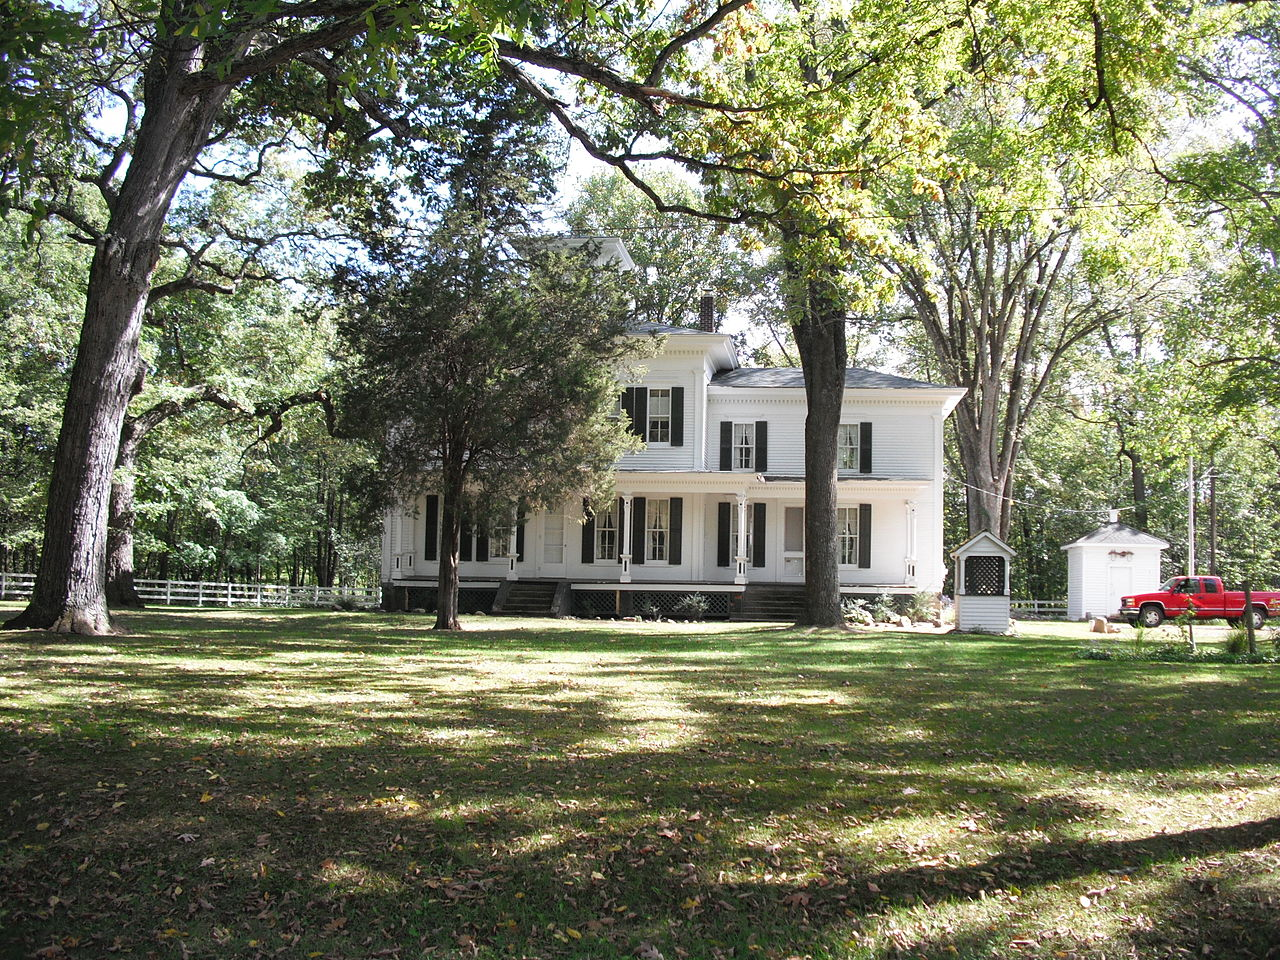 The George Newton House was built in 1865 in the Italianate style.